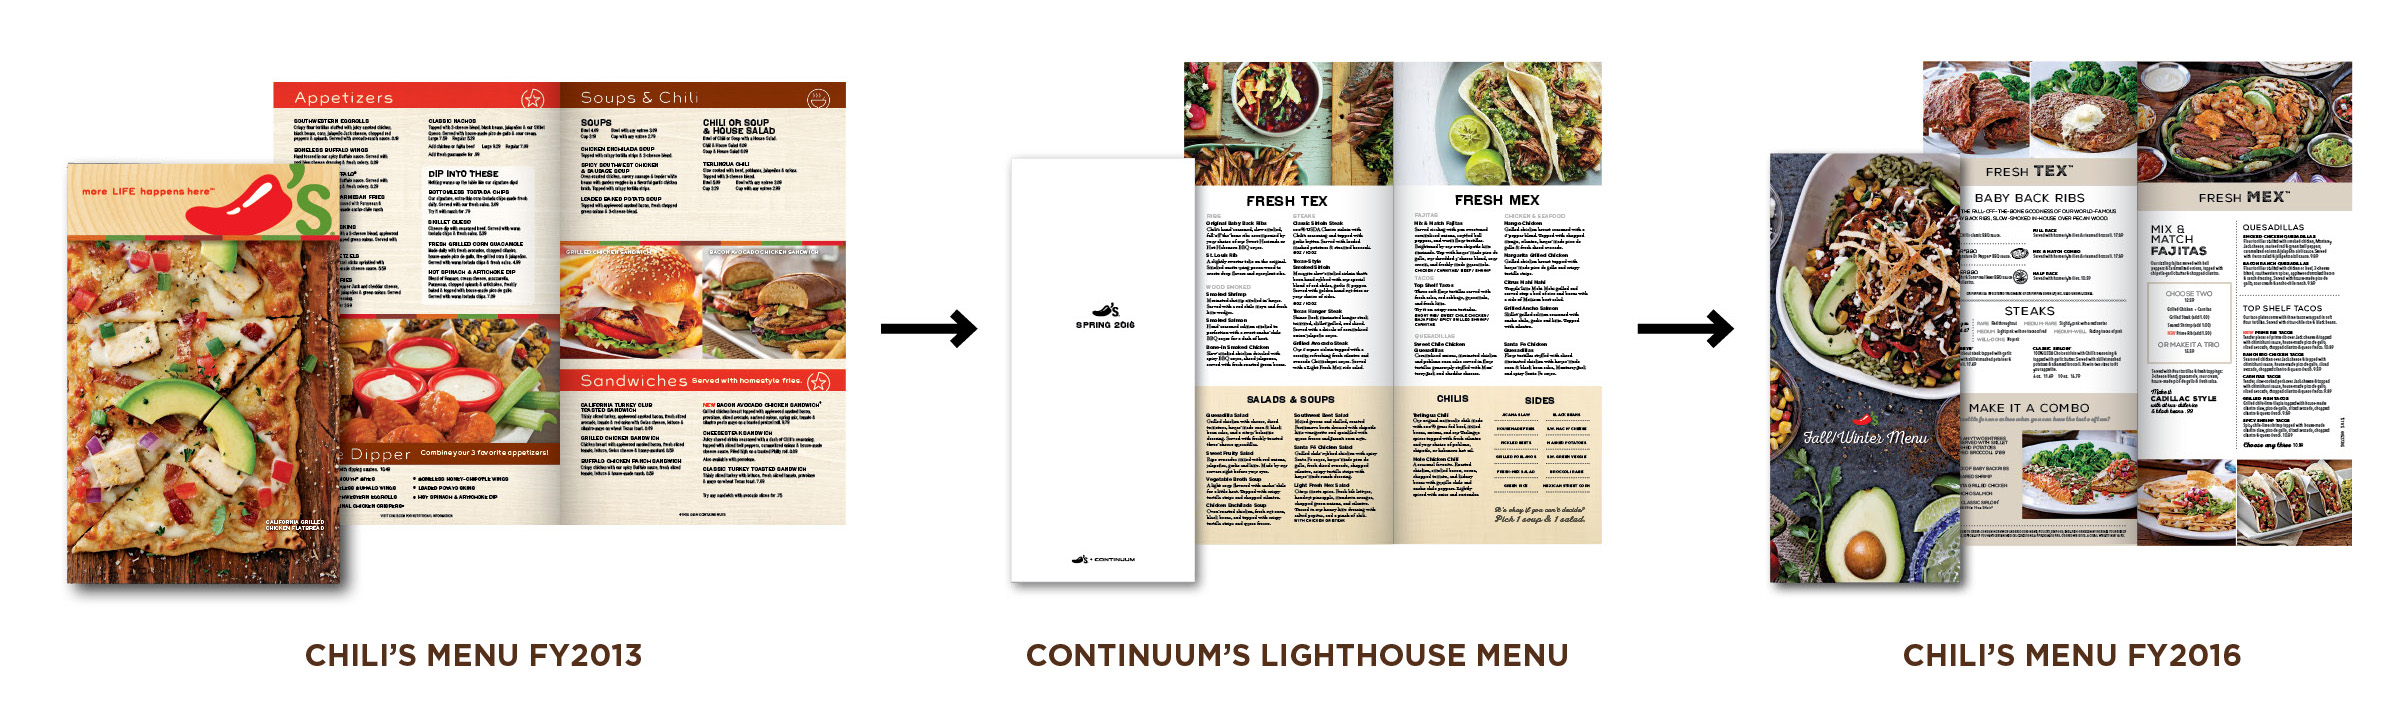 Chili's Menu Innovation